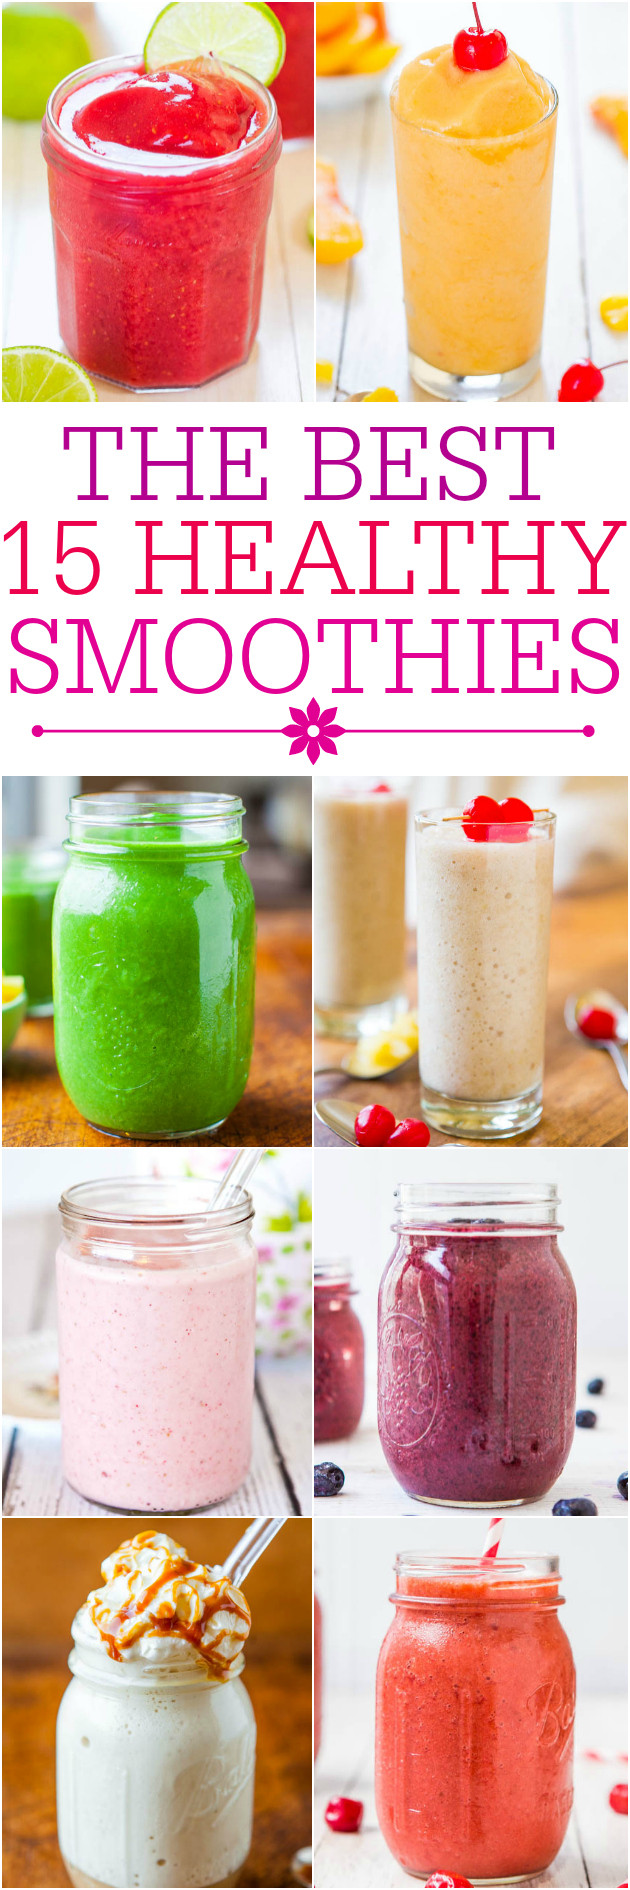 Healthy Smoothies To Make  Fruit and Yogurt Smoothie Averie Cooks